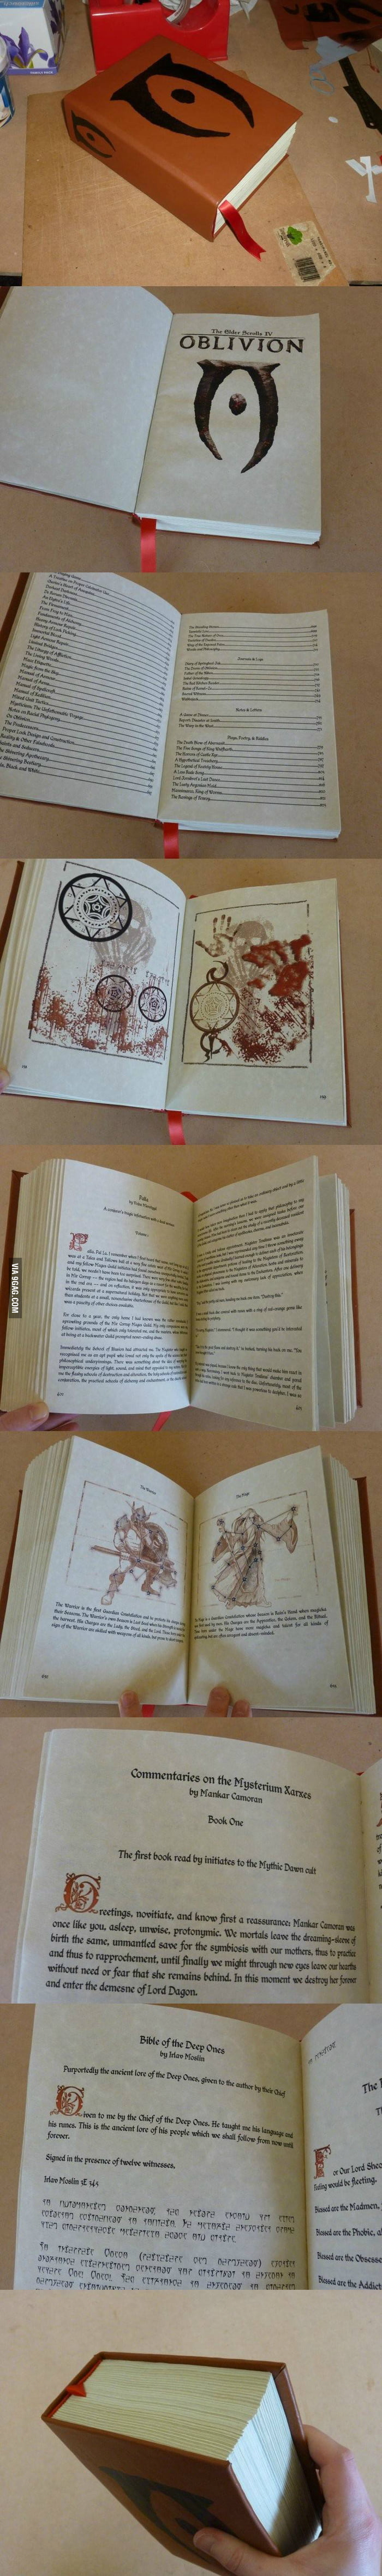 Amazing handmade tome filled with the text of Oblivion.